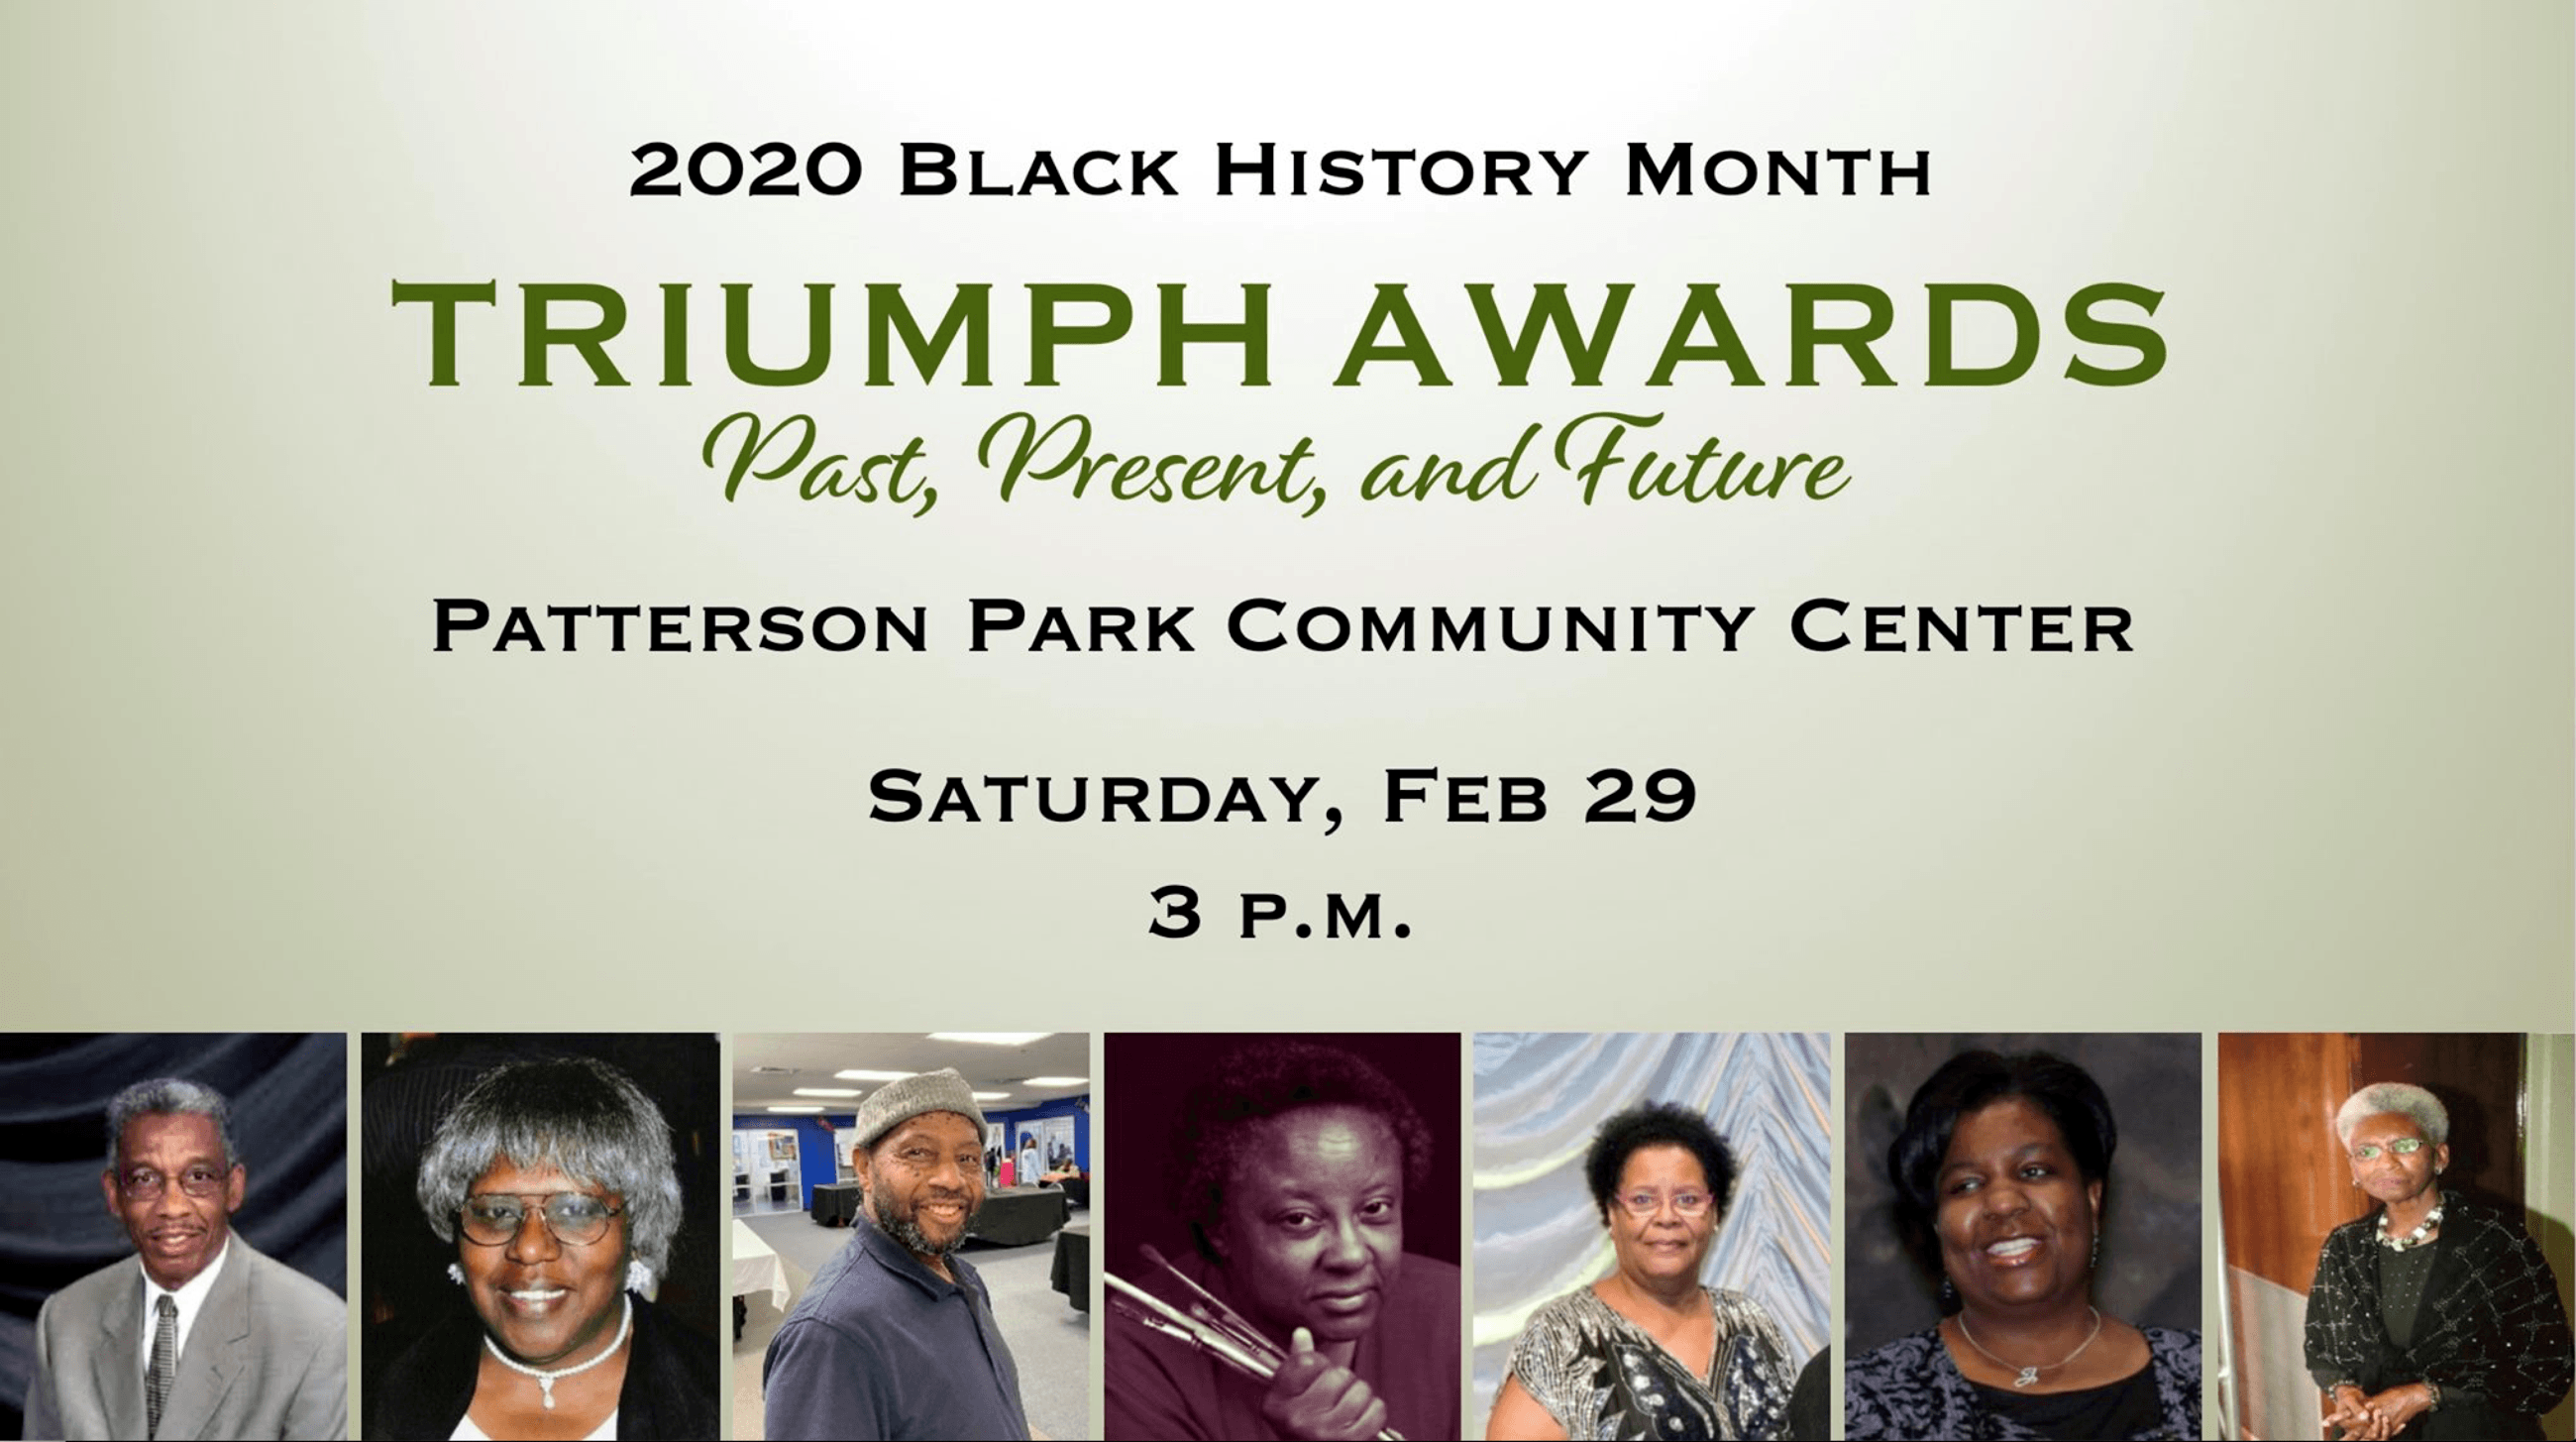 Trumph Awards Feb 29